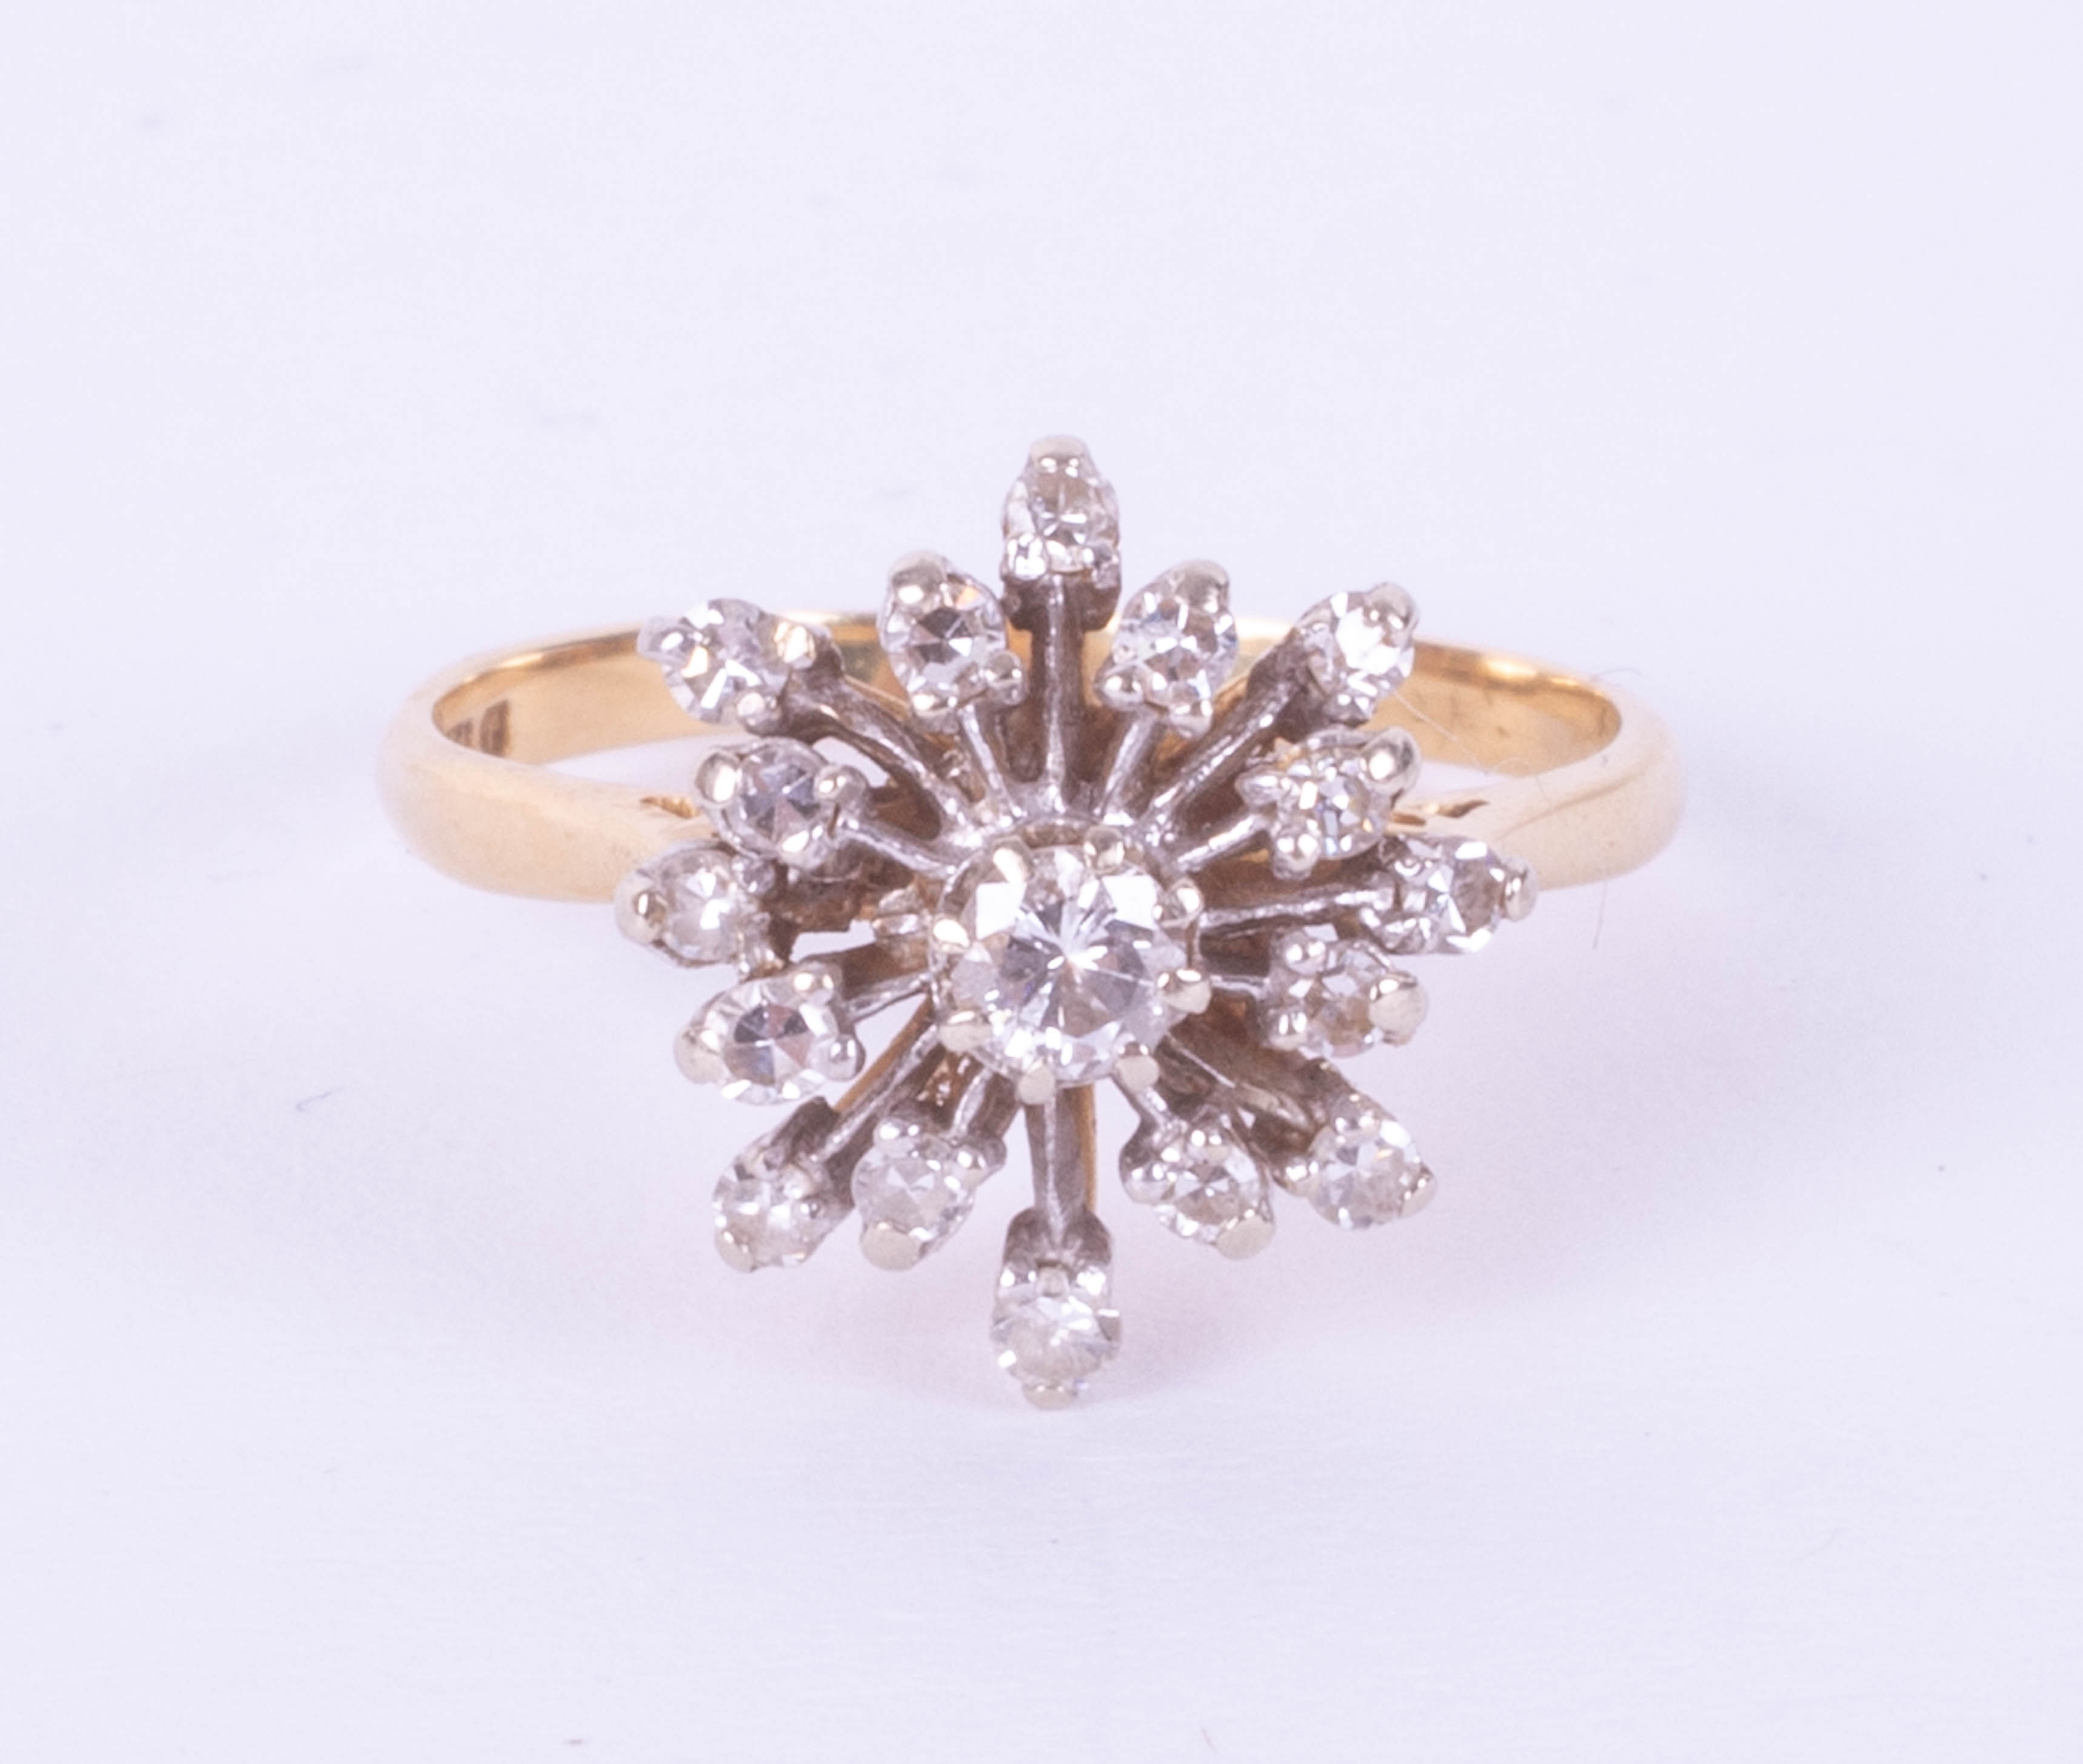 An 18ct diamond cluster ring set in yellow gold, size N.